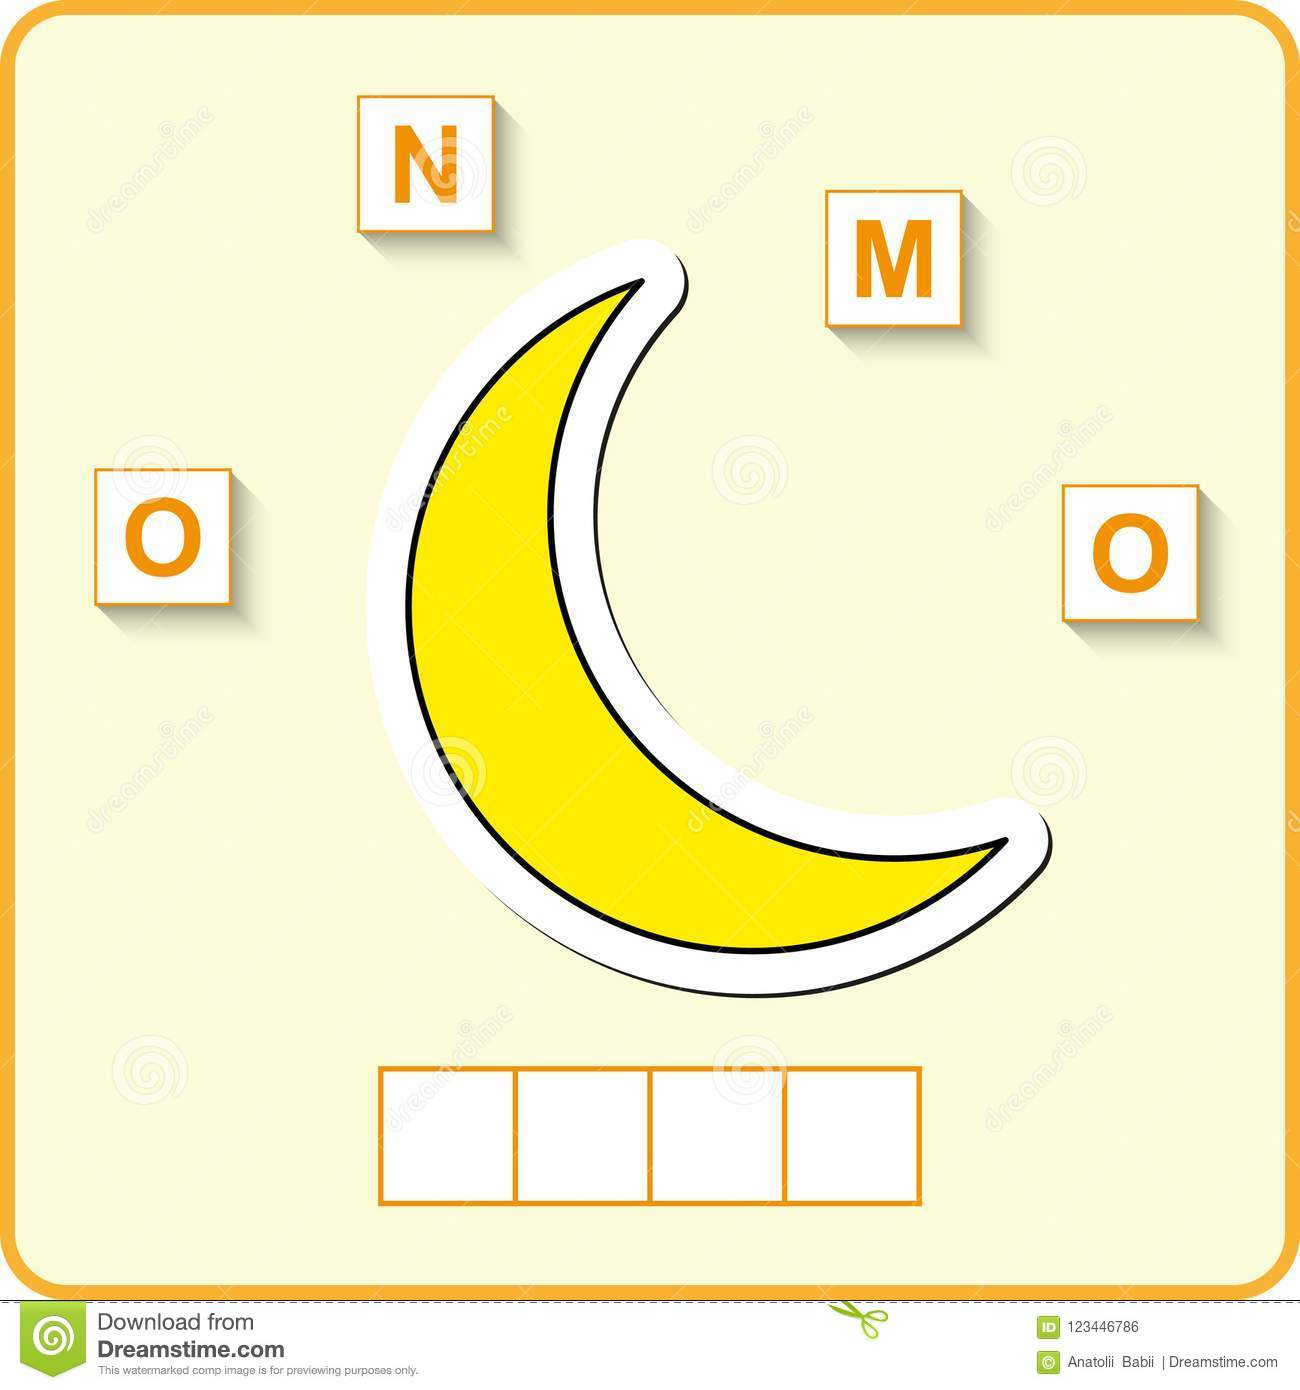 Worksheet For Education Words Puzzle Educational Game For Children Place The Letters In Right Order Stock Vector Illustration Of Activity Complete 123446786